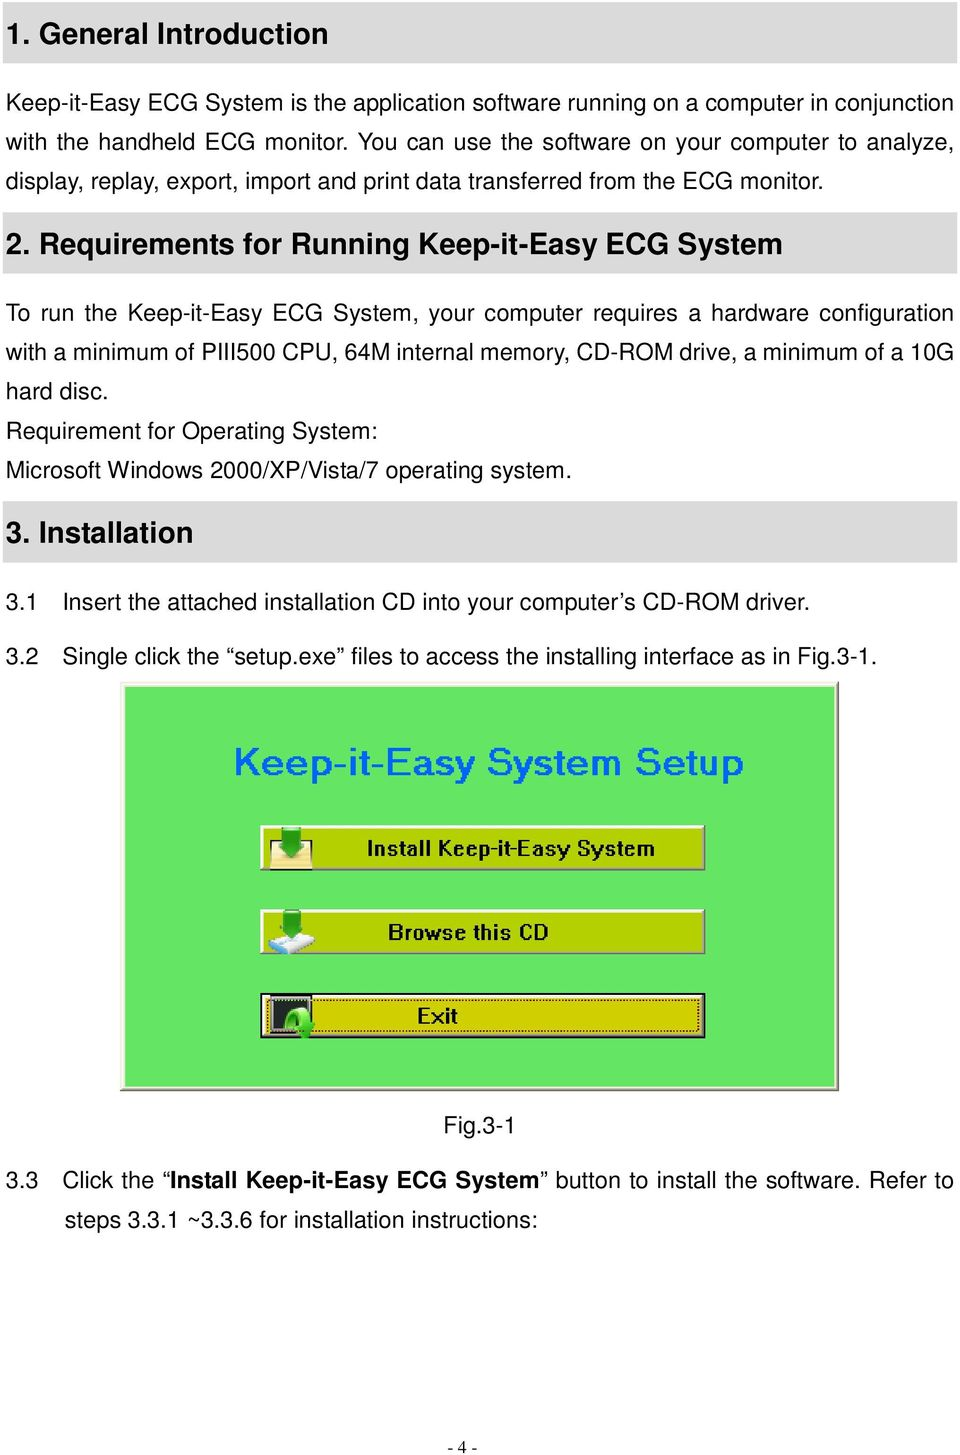 Requirements for Running Keep-it-Easy ECG System To run the Keep-it-Easy ECG System, your computer requires a hardware configuration with a minimum of PIII500 CPU, 64M internal memory, CD-ROM drive,